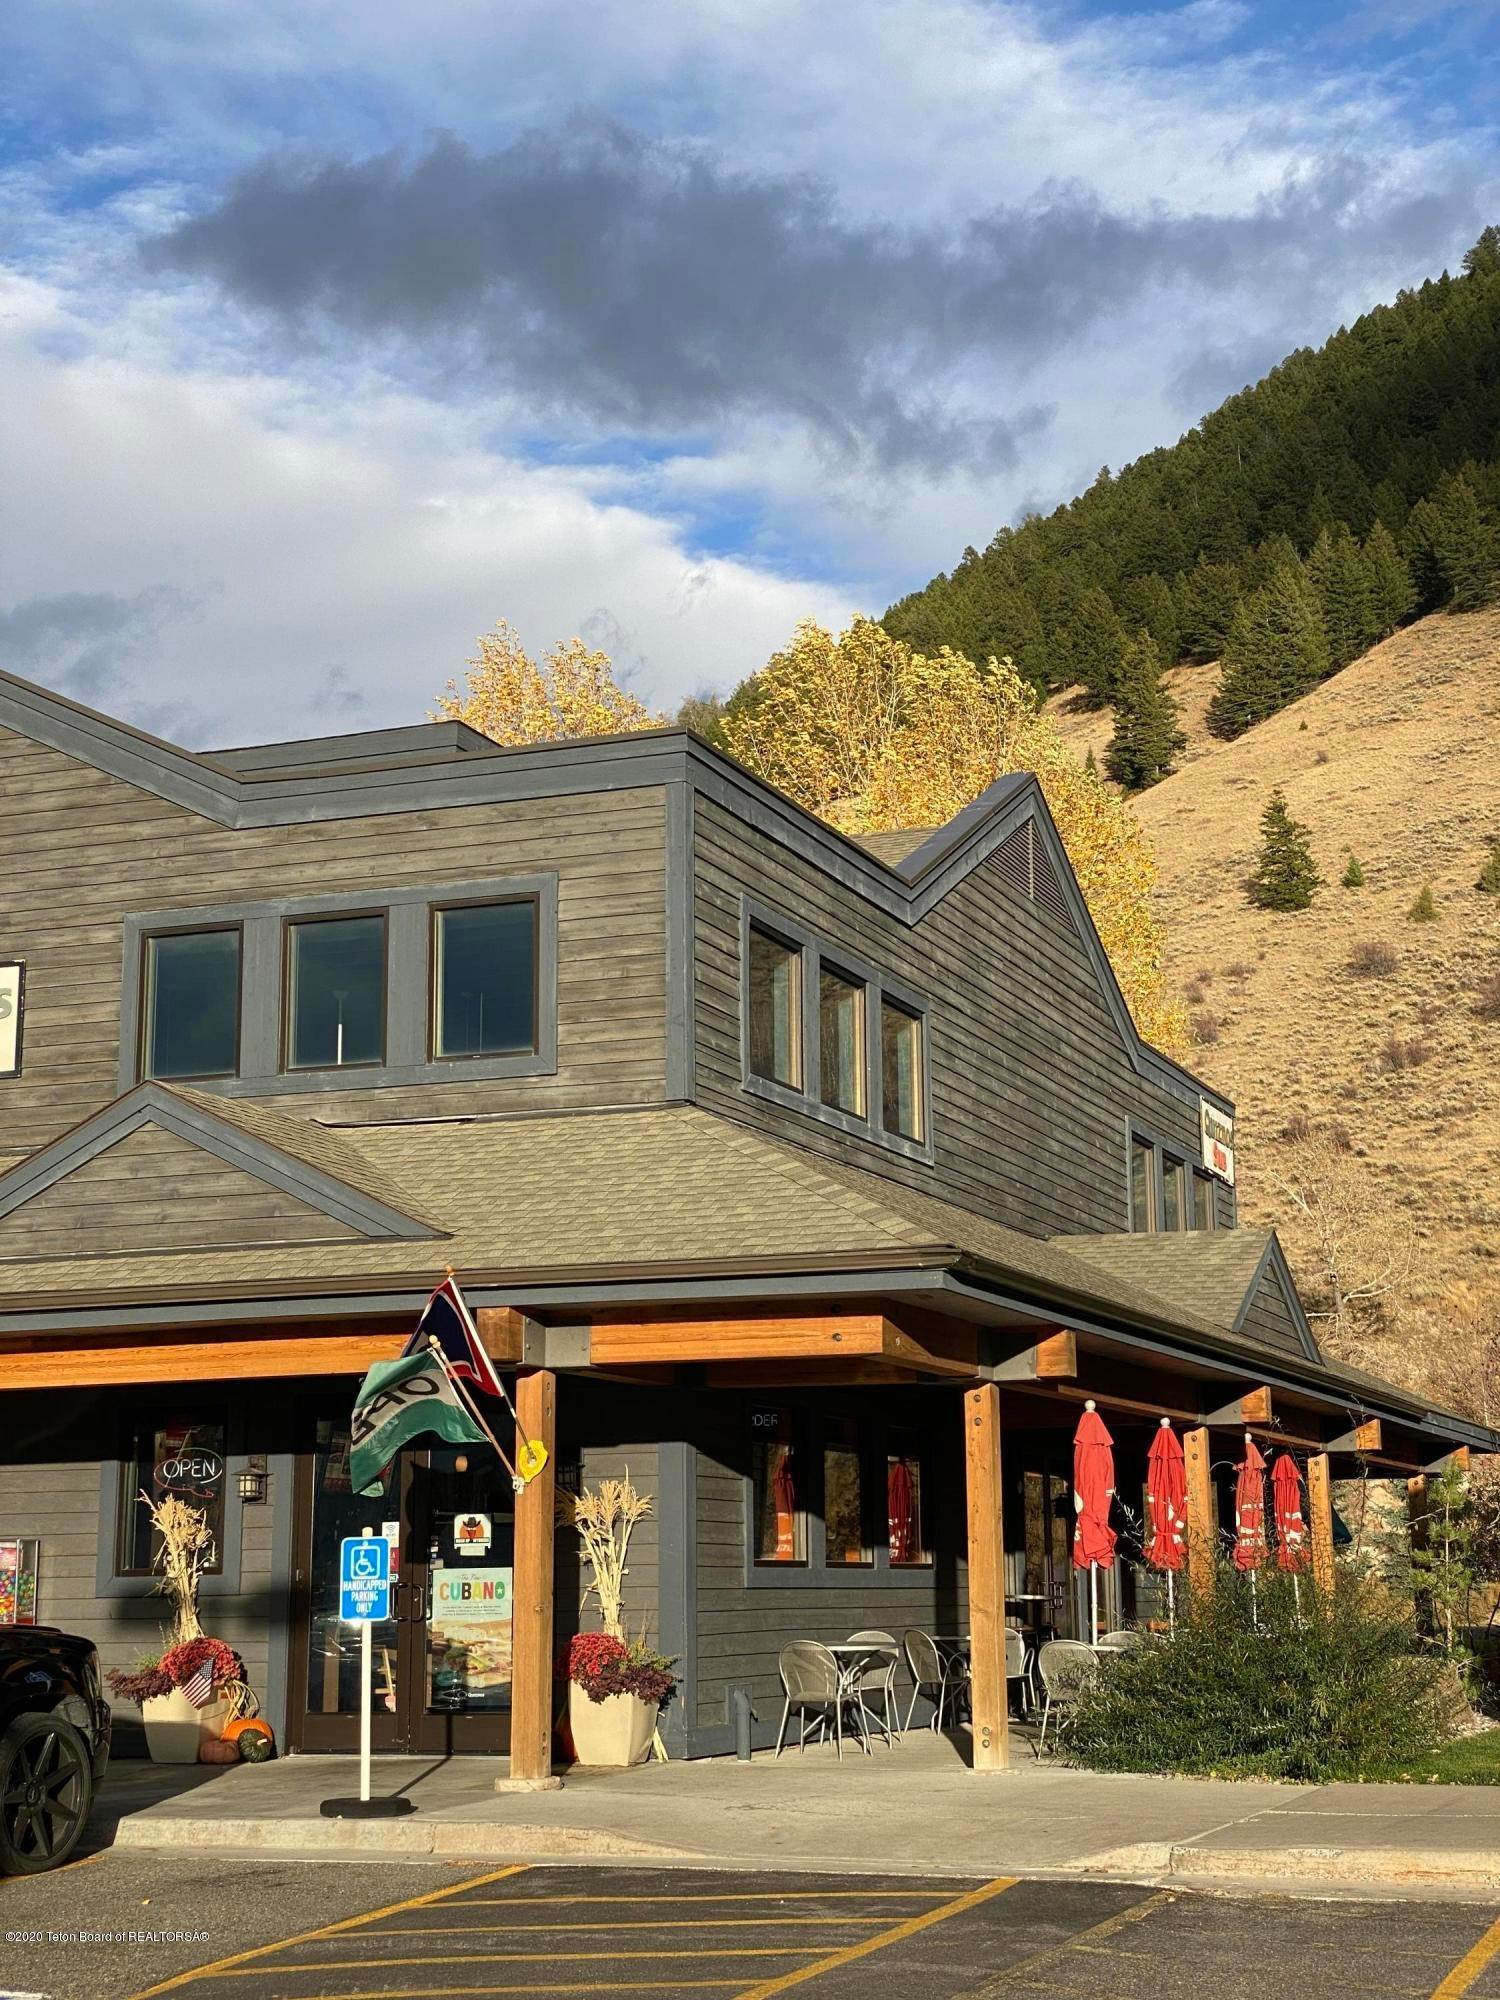 5. Commercial for Sale at 1325 S HWY 89 HWY 89 Jackson, Wyoming 83001 United States